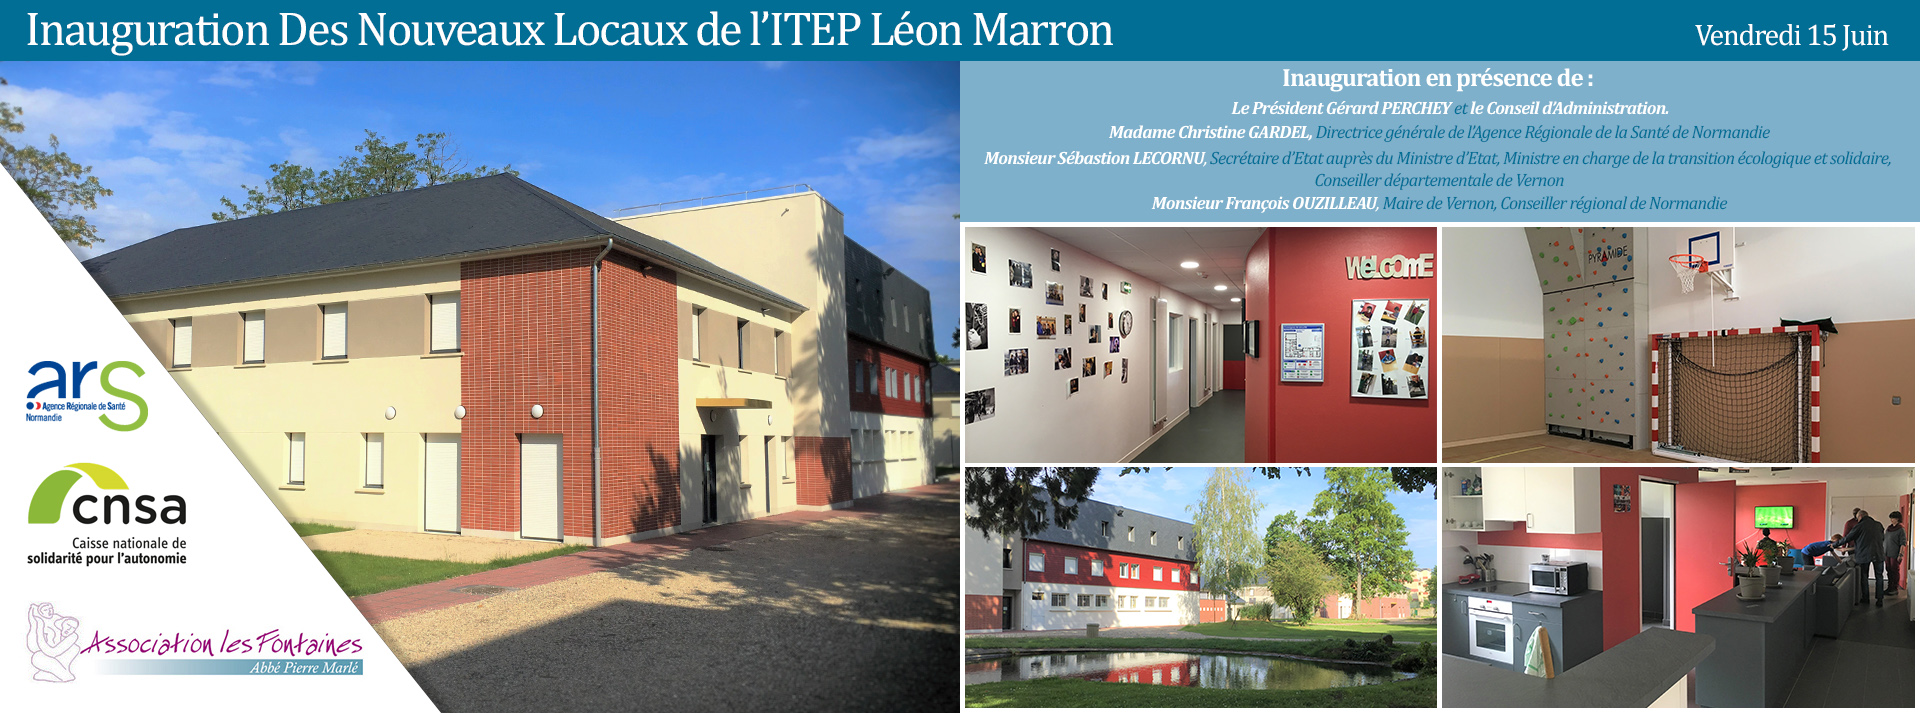 inauguration ITEP léon marron